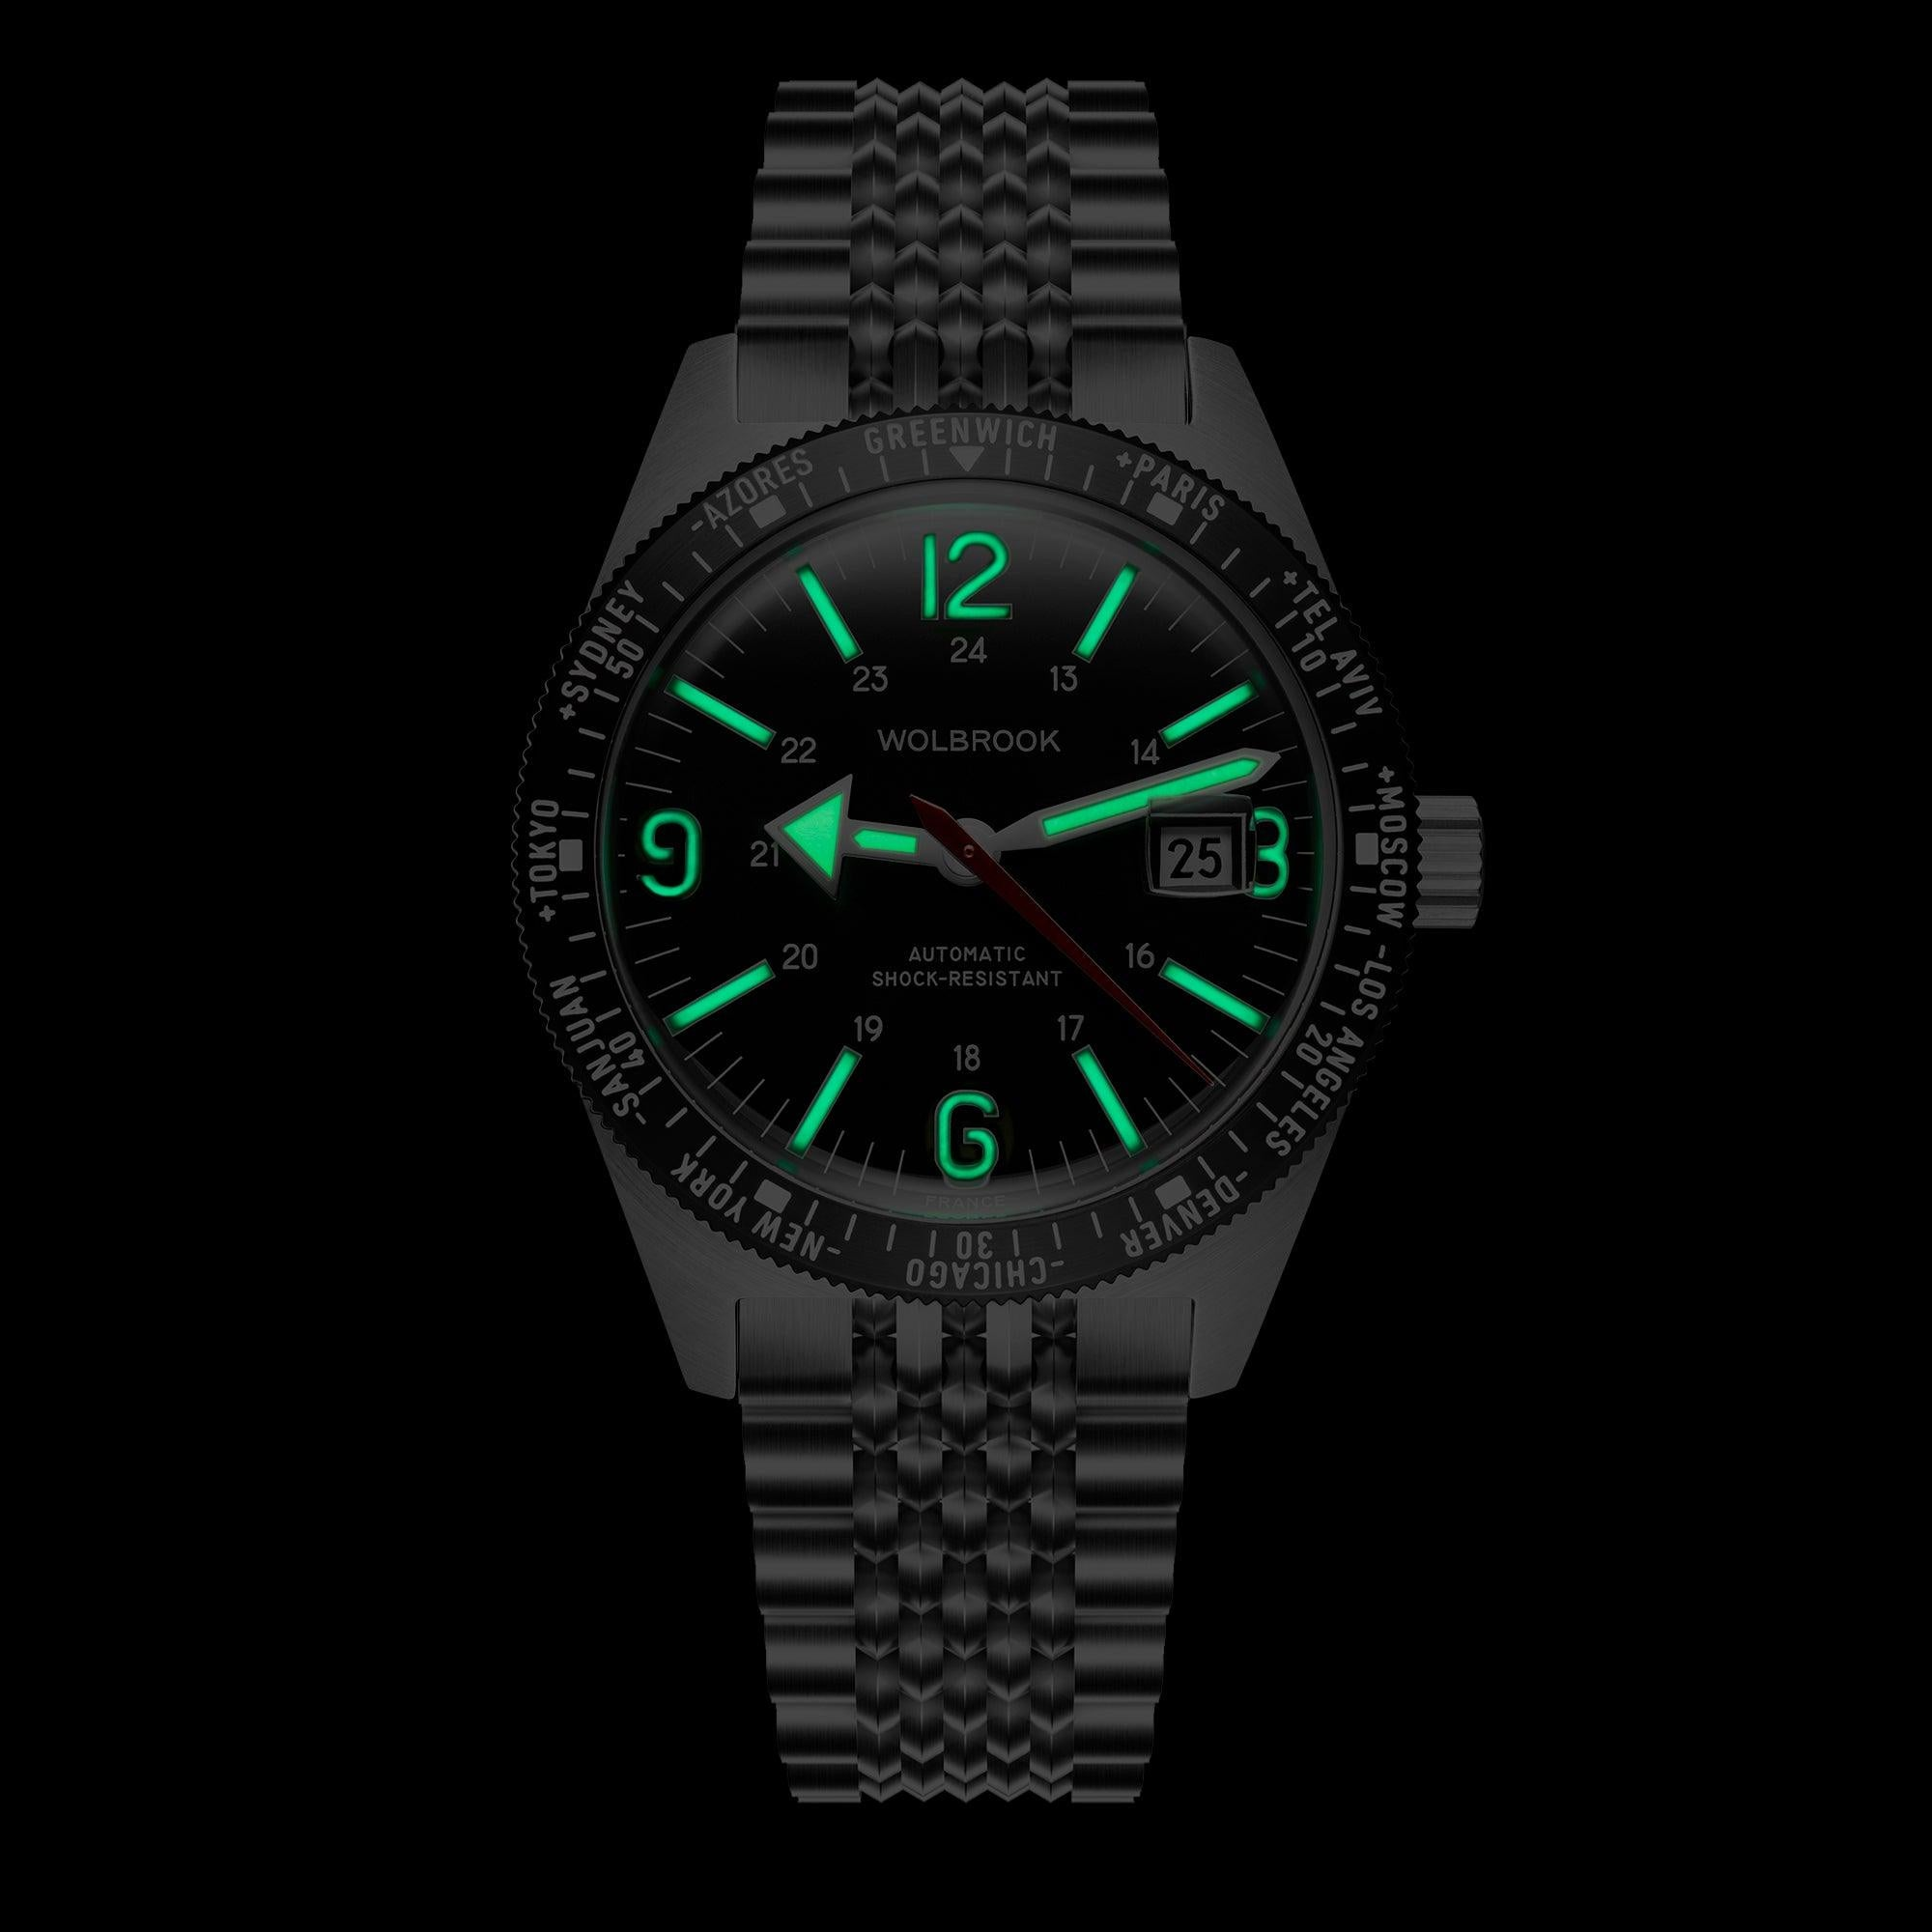 Skindiver WT Automatic Bracelet Watch